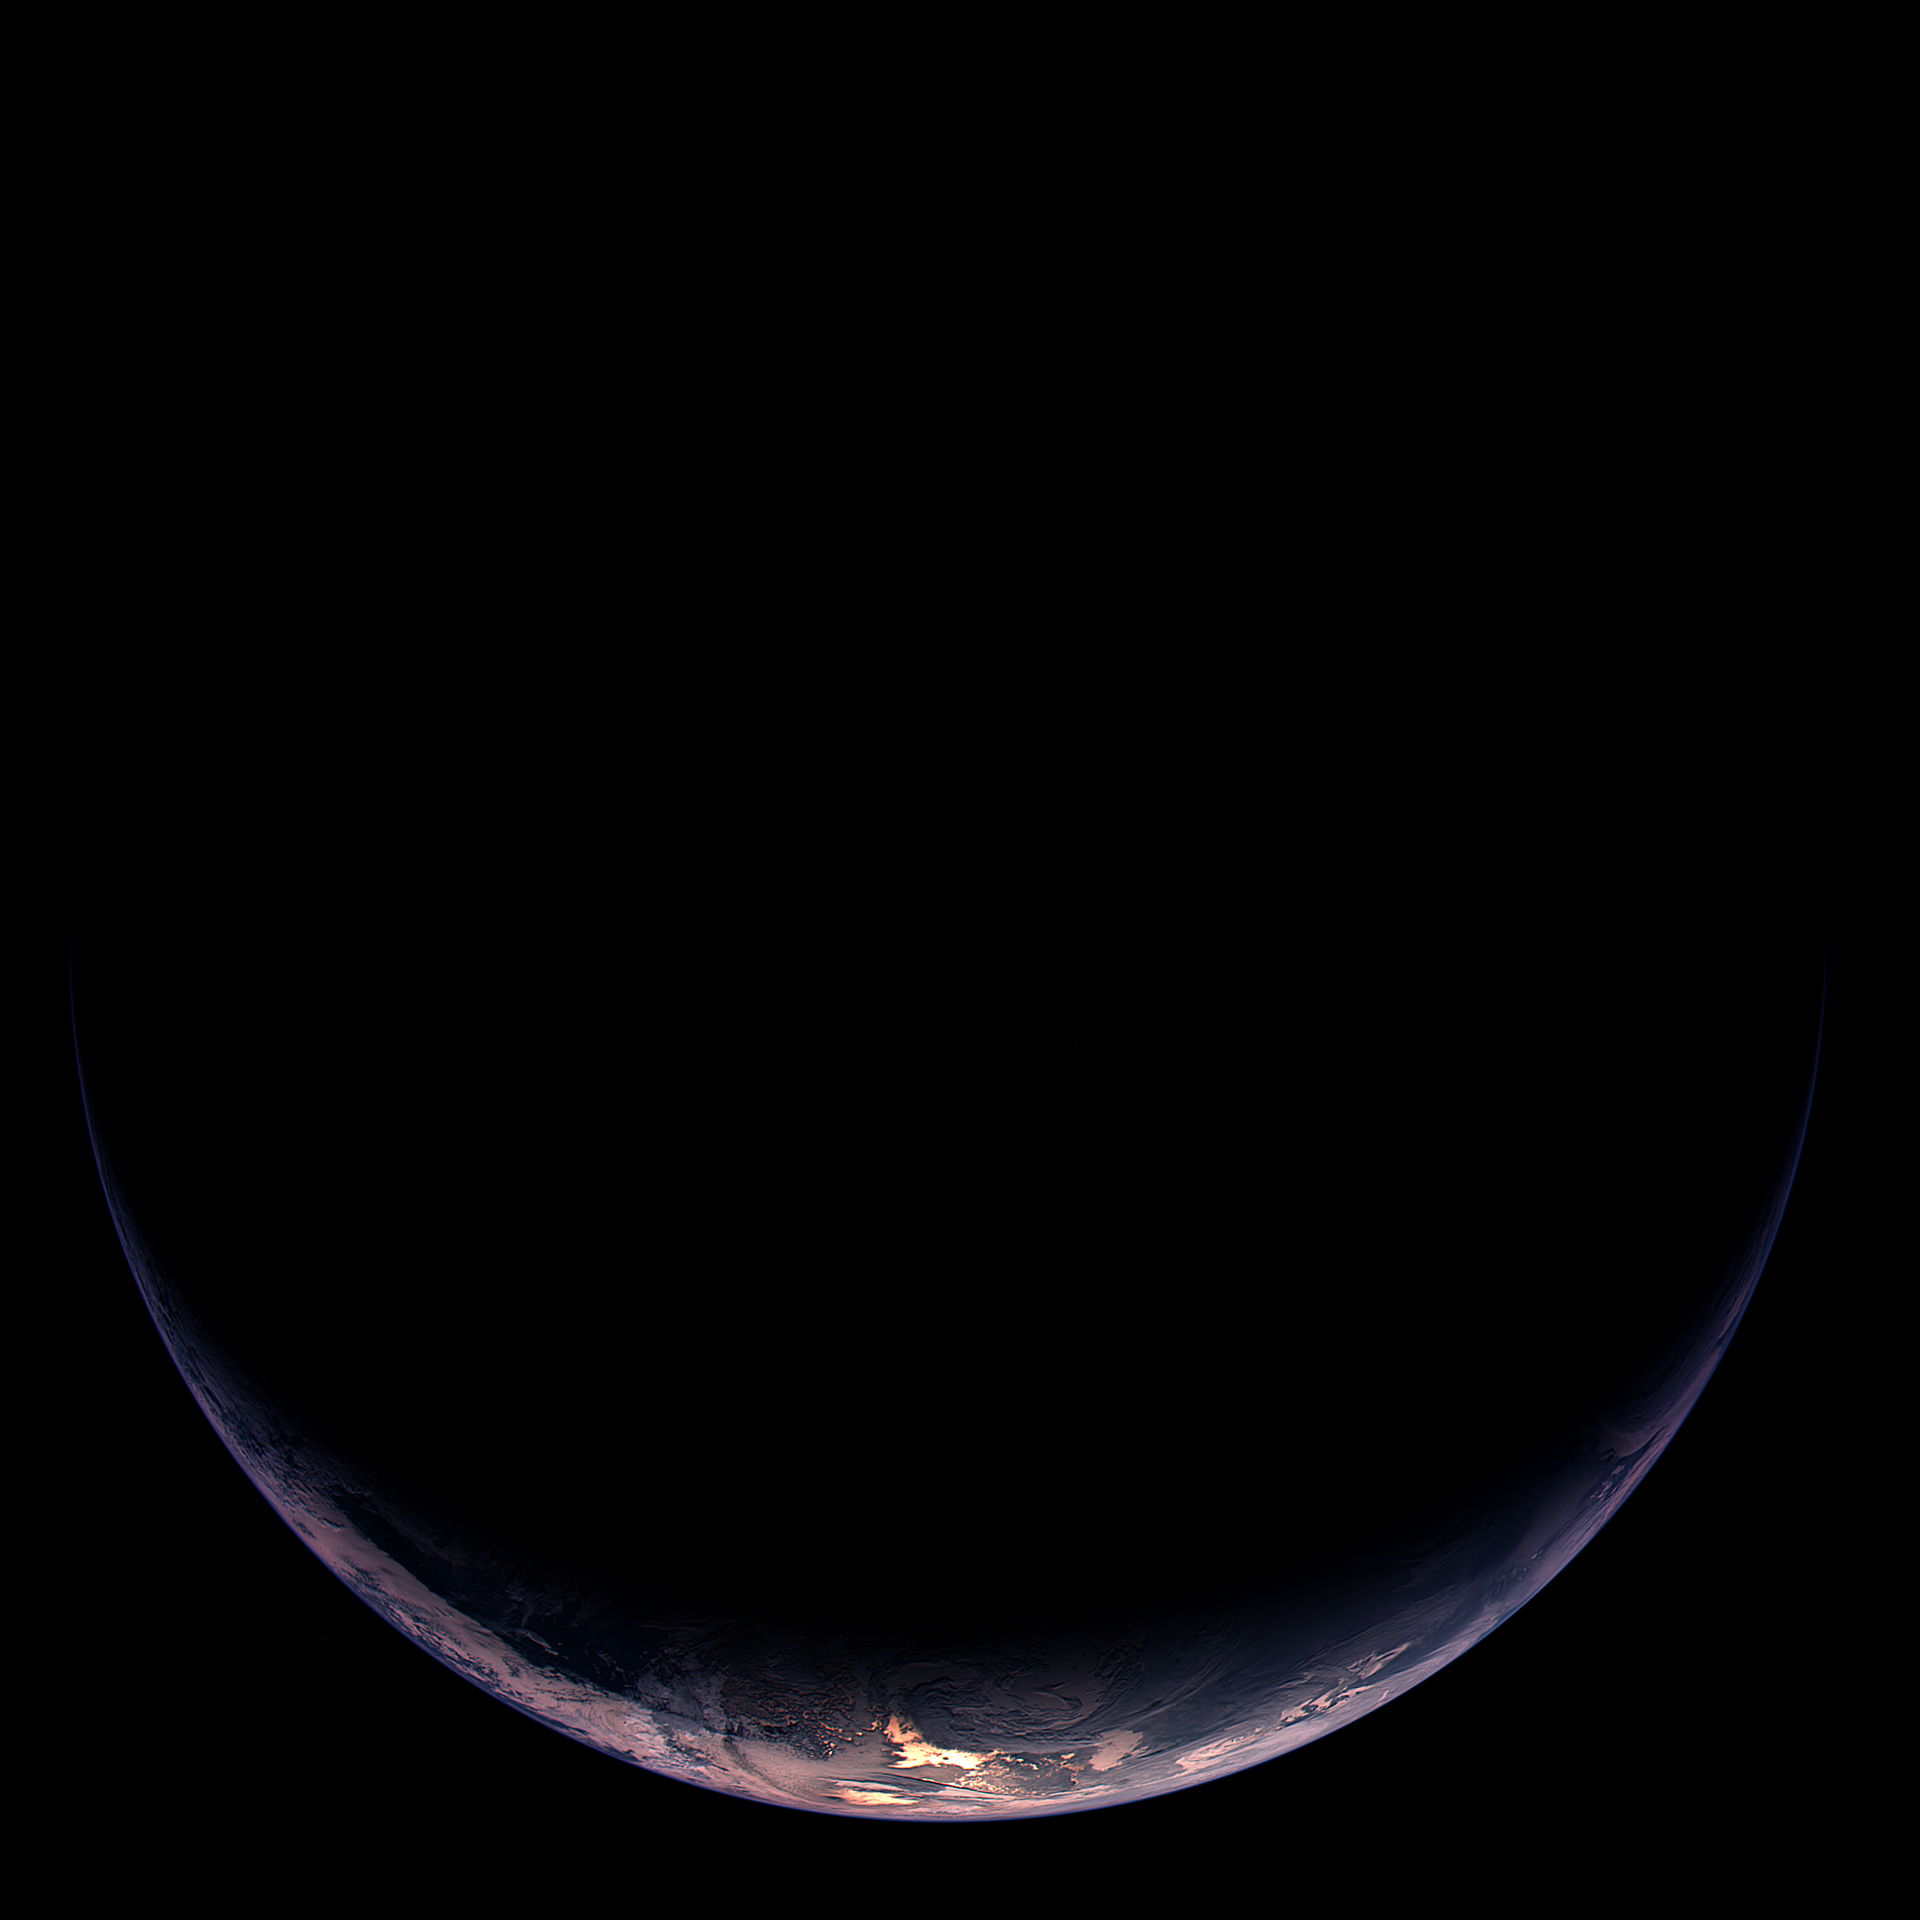 Illuminated crescent of Earth showing part of South America and Antarctica